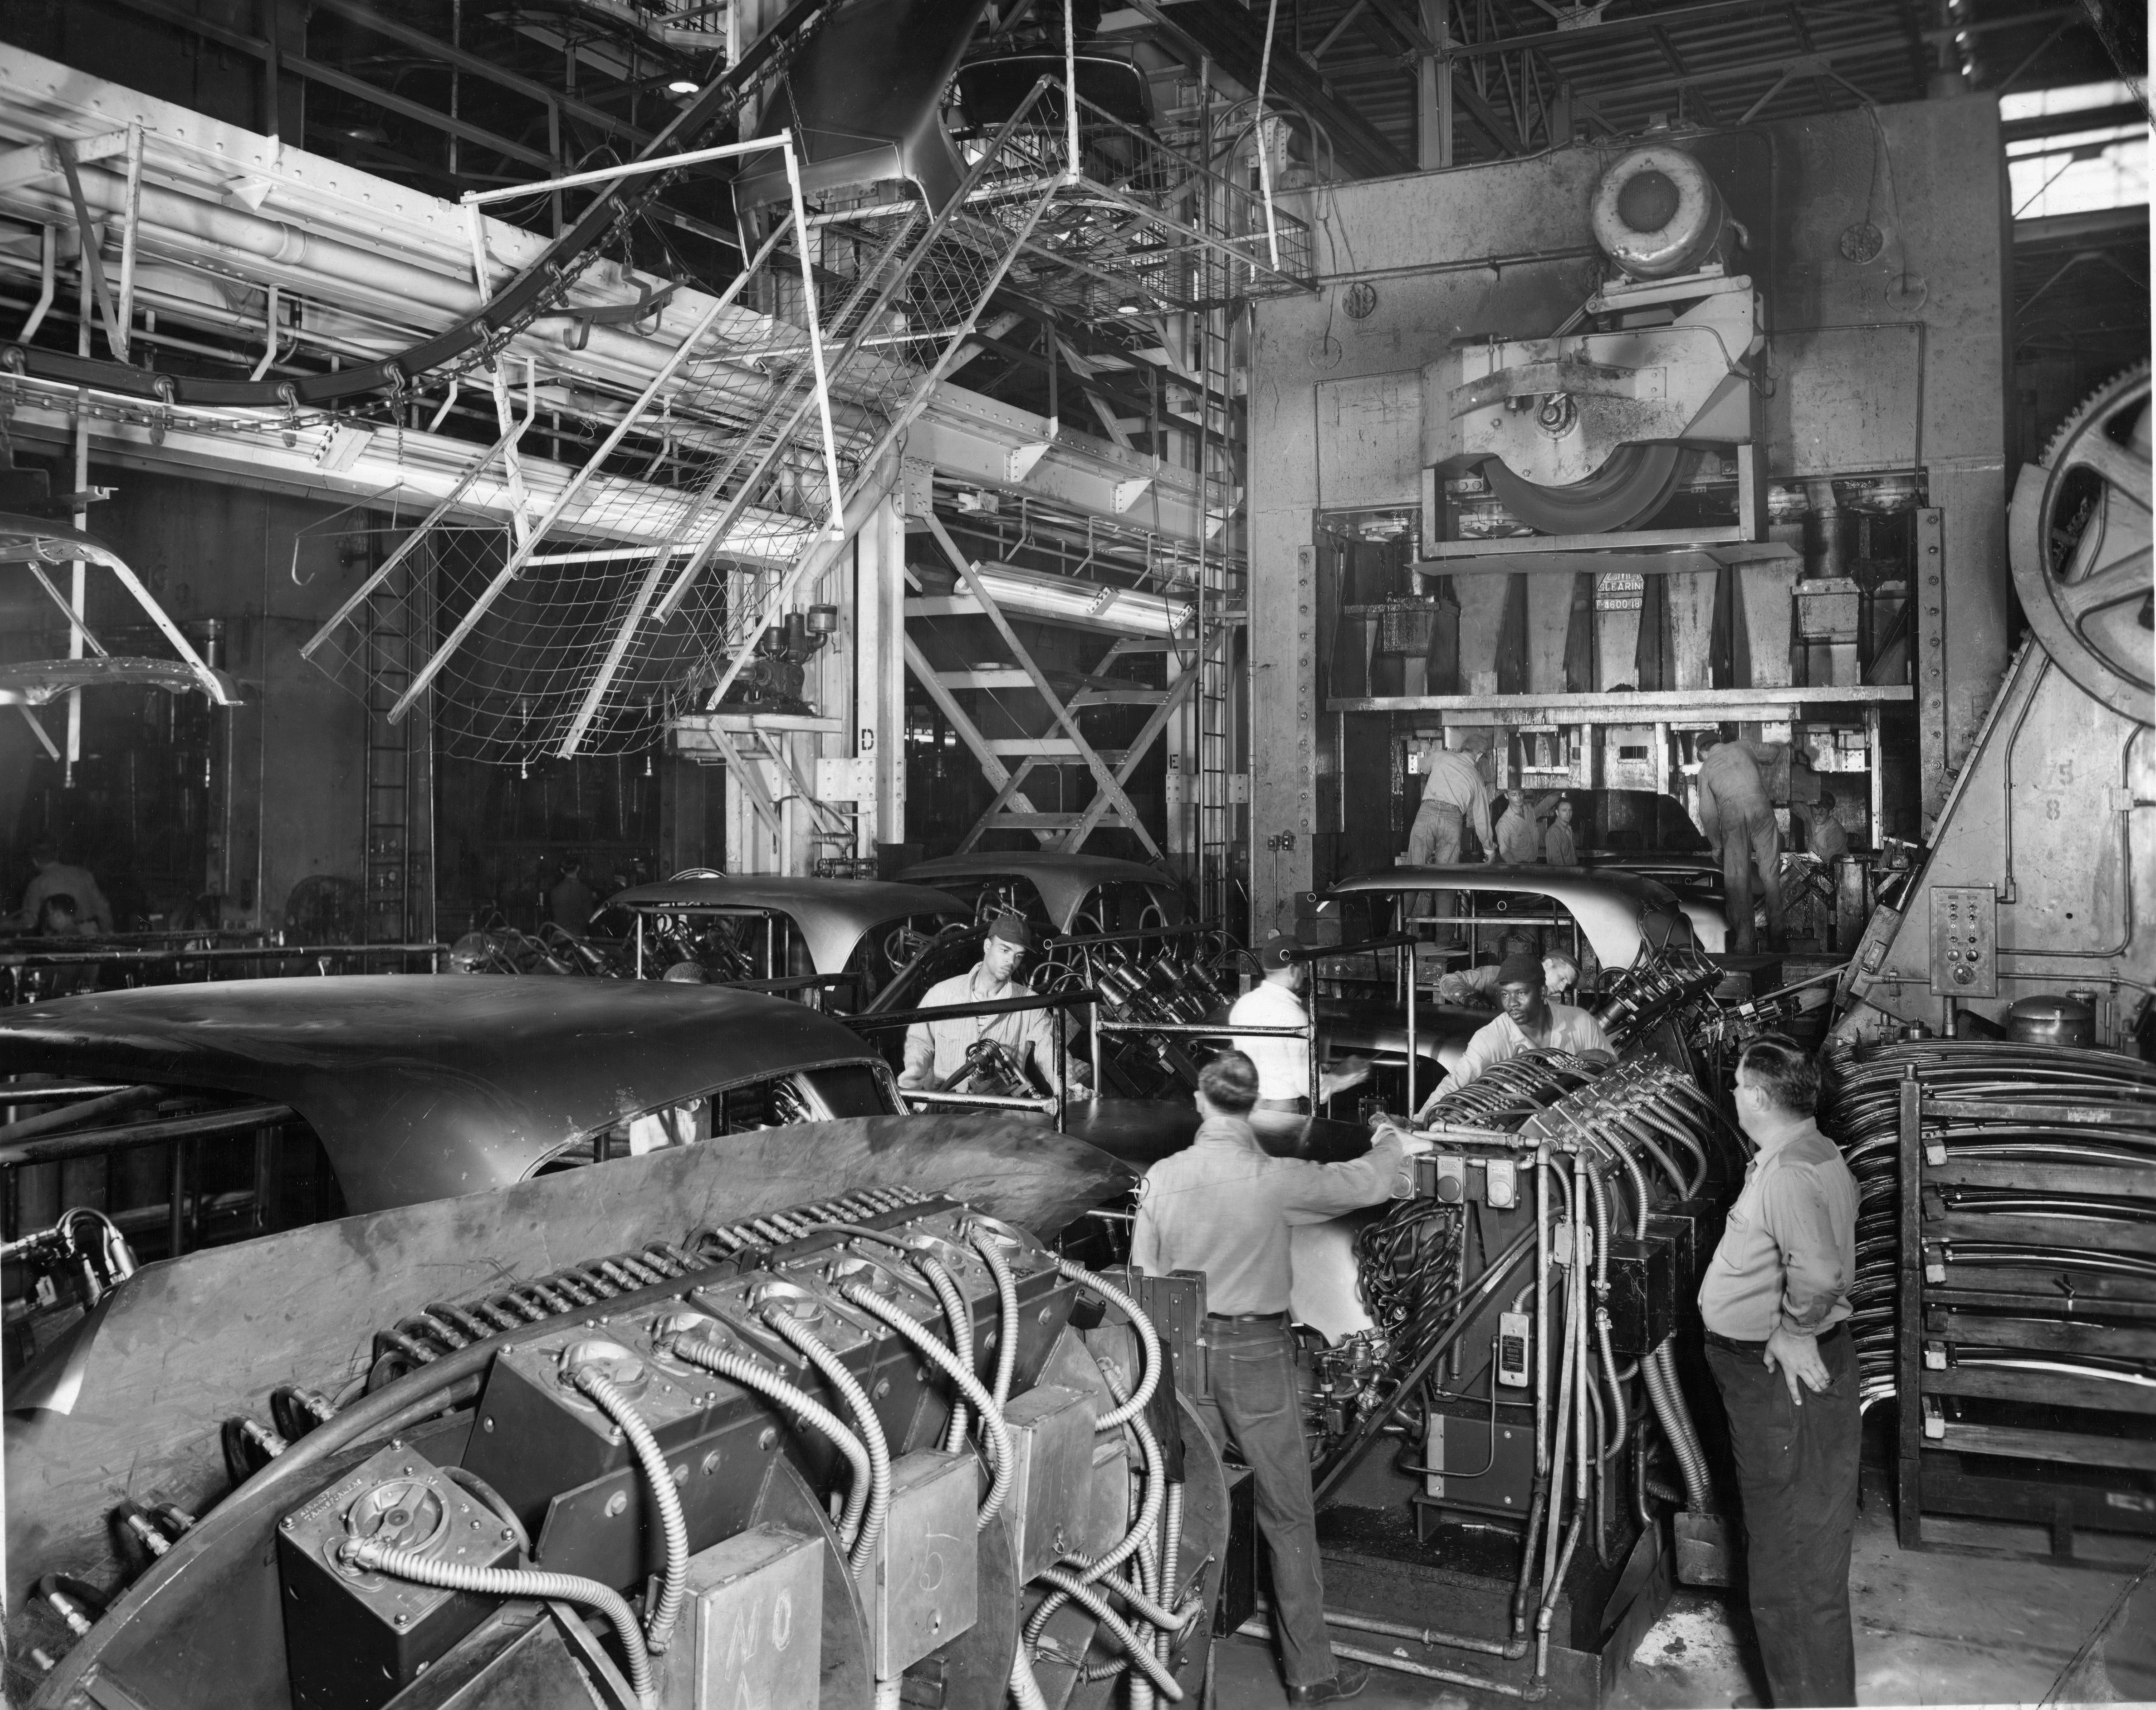 Black and white image of workers assembling automobiles